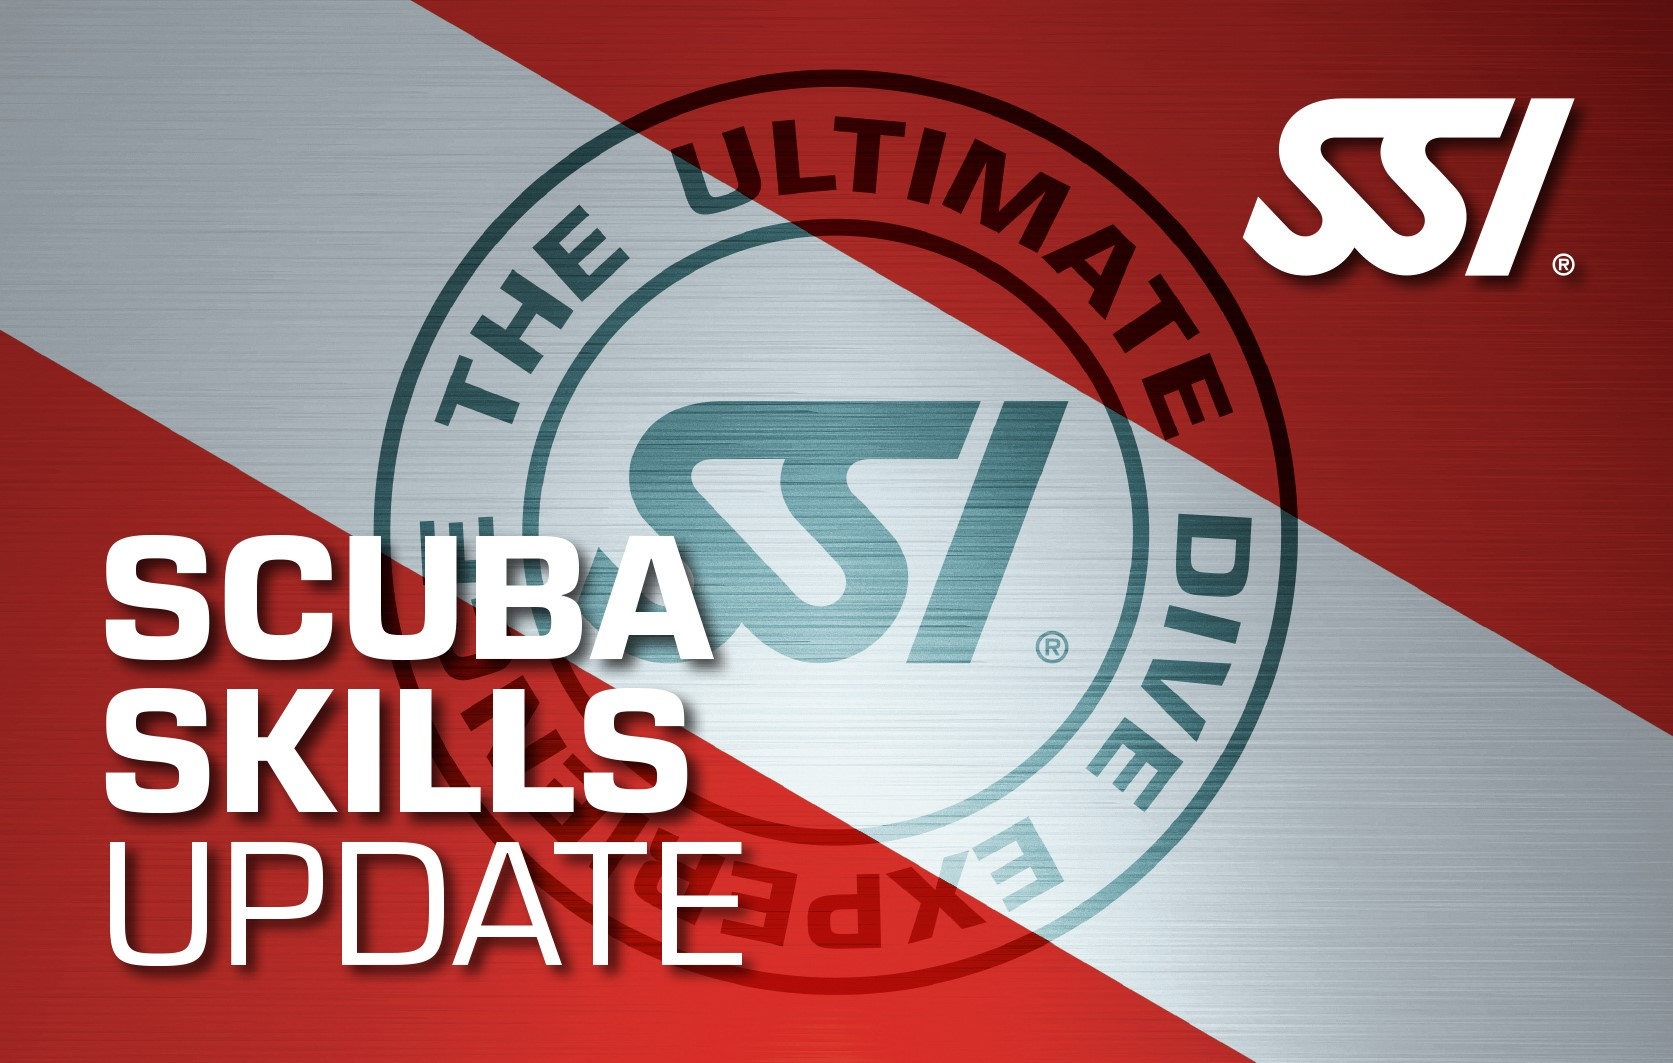 SSI Scuba Skills Update certification card